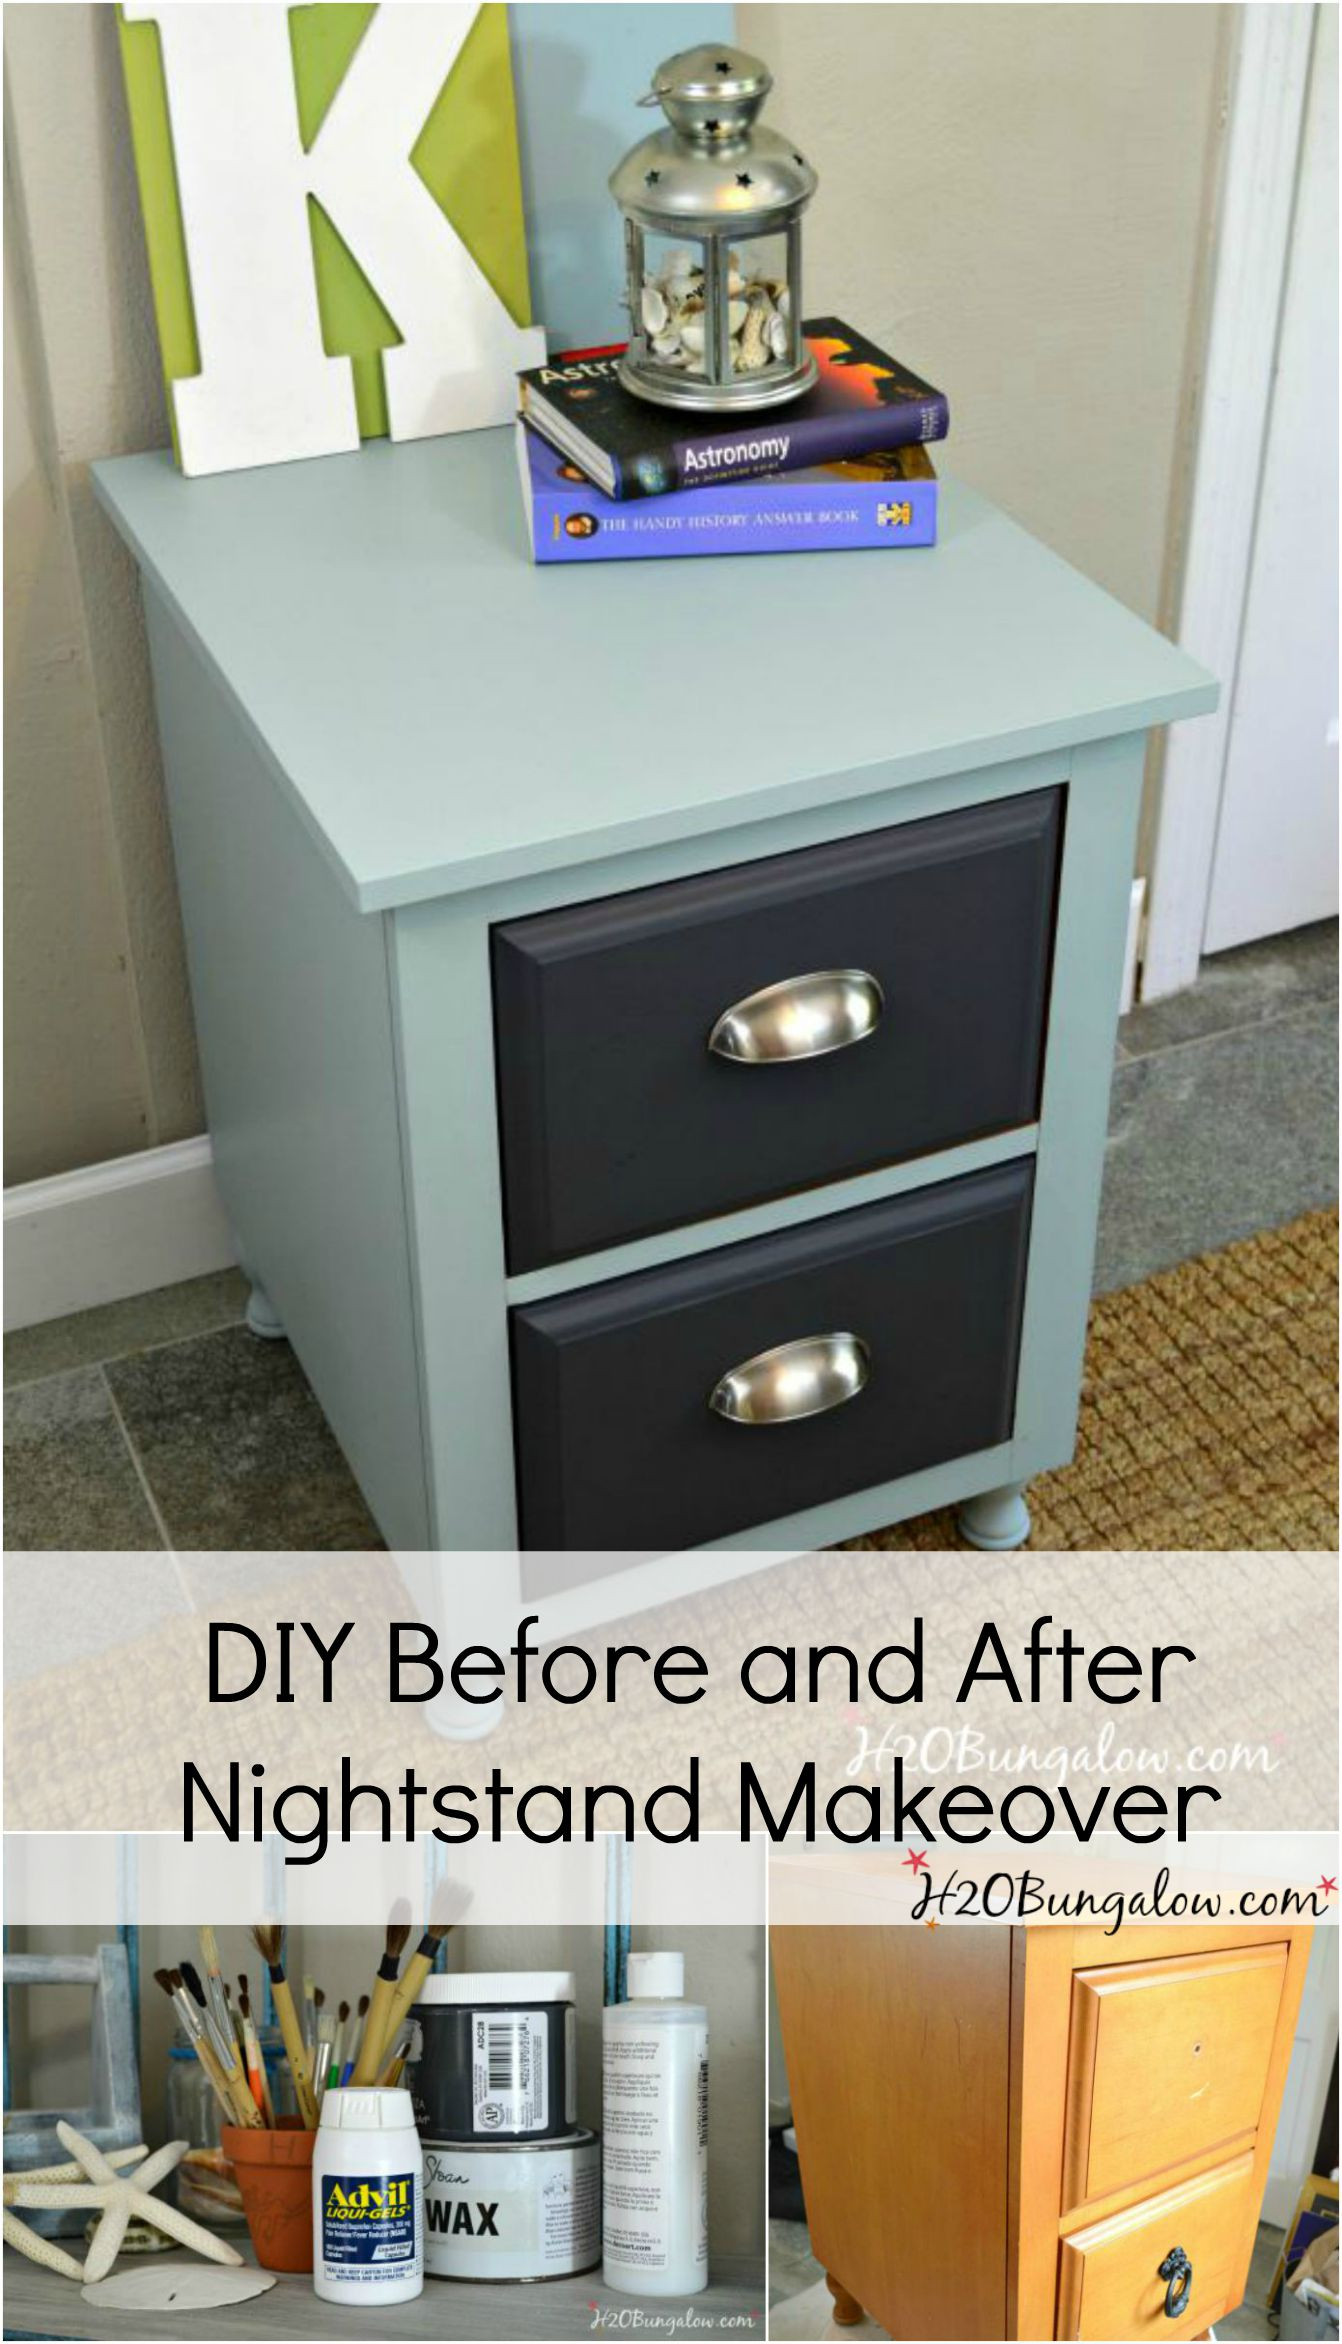 diy before and after nightstand makeover Diy Nightstand